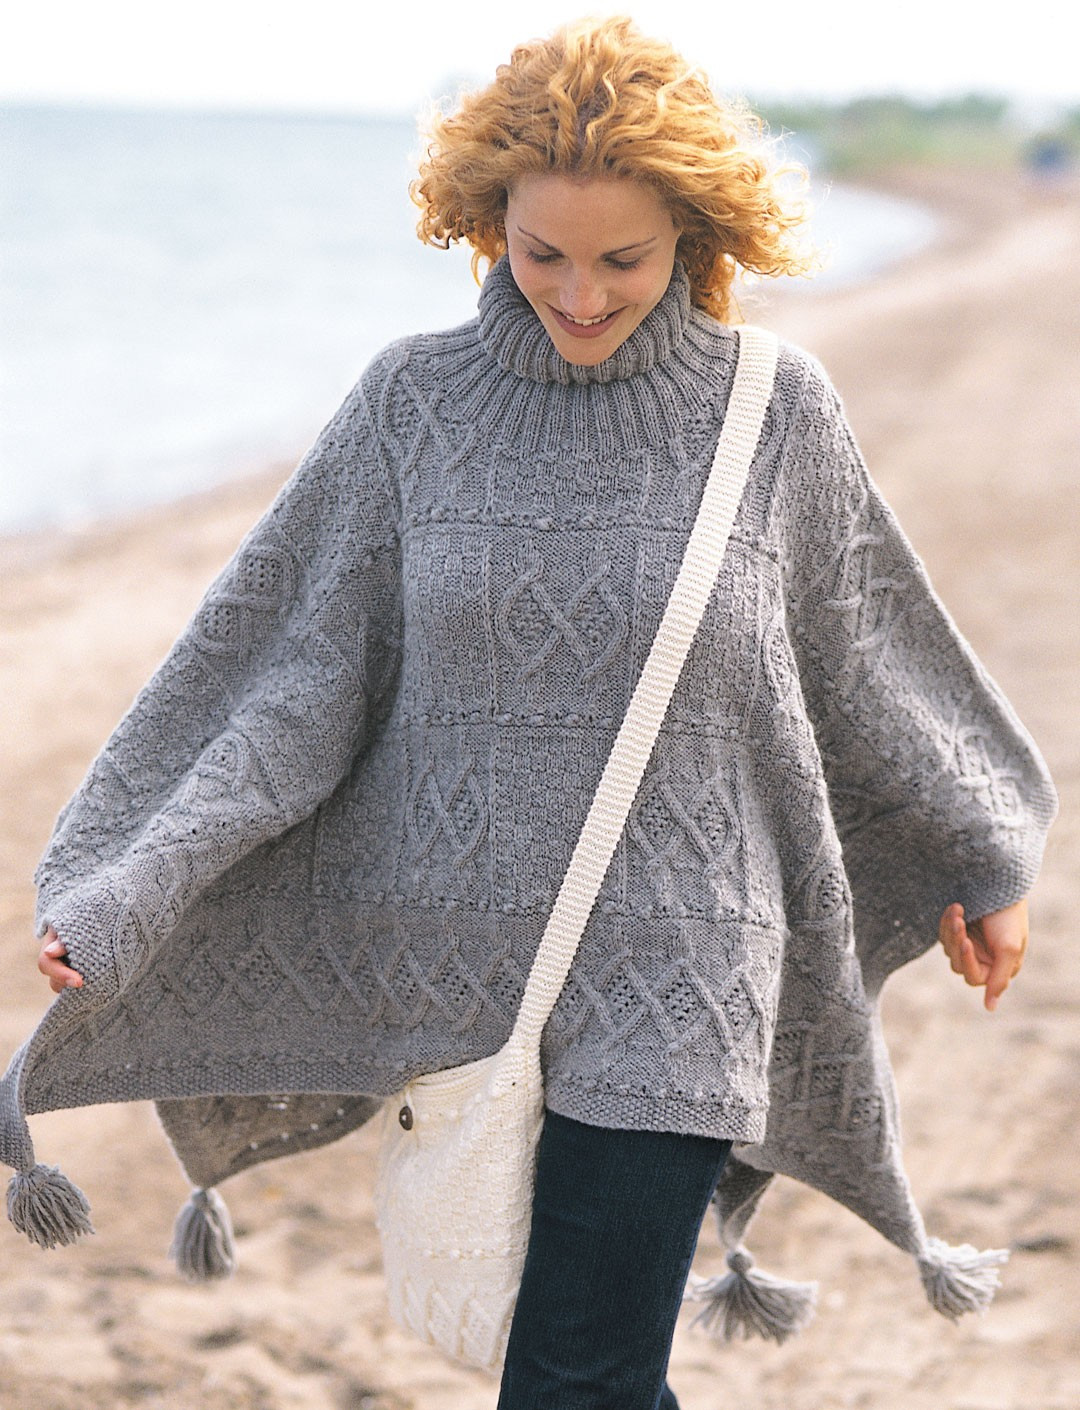 Poncho Knitting Patterns Beautiful Modern Poncho Knitting Patterns Of Poncho Knitting Patterns Fresh Click for Close Up Anything and Everything